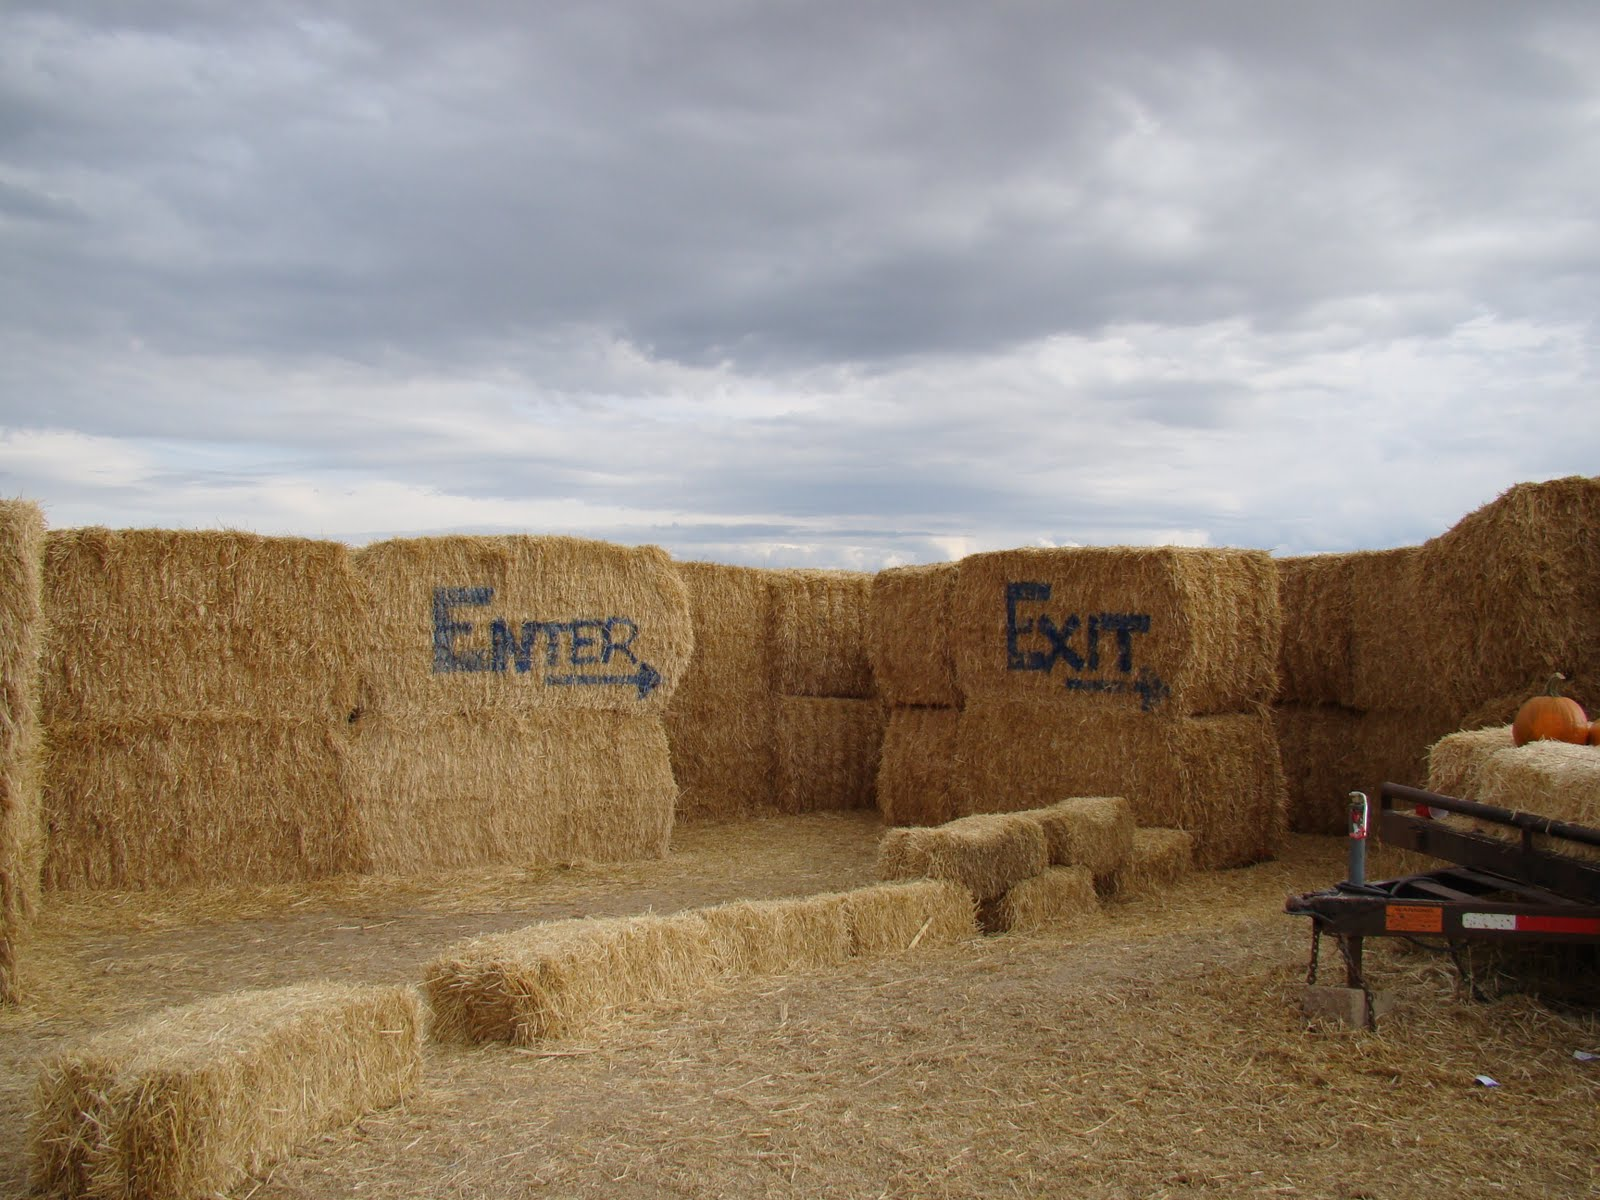 The Straw Maze is one of the fun fall festivities in Rexburg.